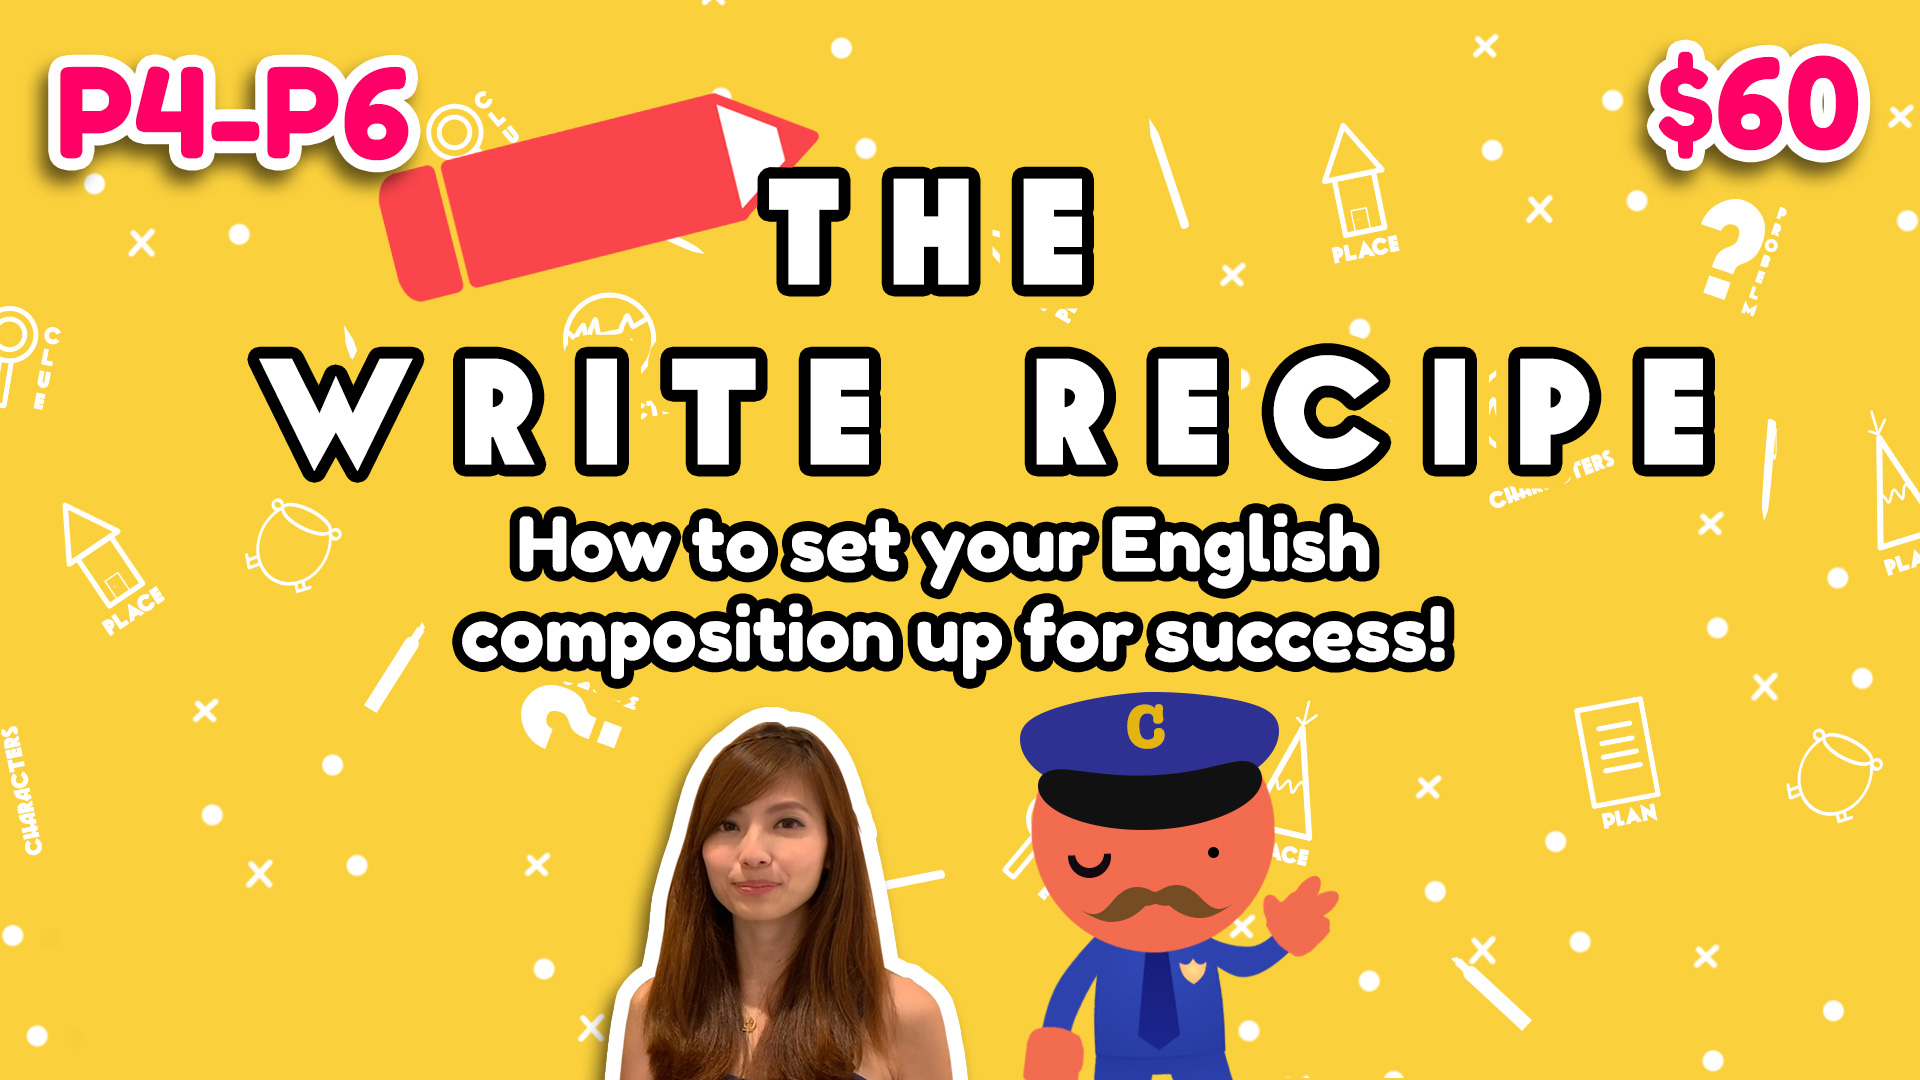 Composition Online Course - 1. Learn about how to plan your writing2. Know the key ingredients to create exciting content during planning3. See the flow of your story with our unique paragraph-by-paragraph structure (New!)4. Application to questions with the PSLE format